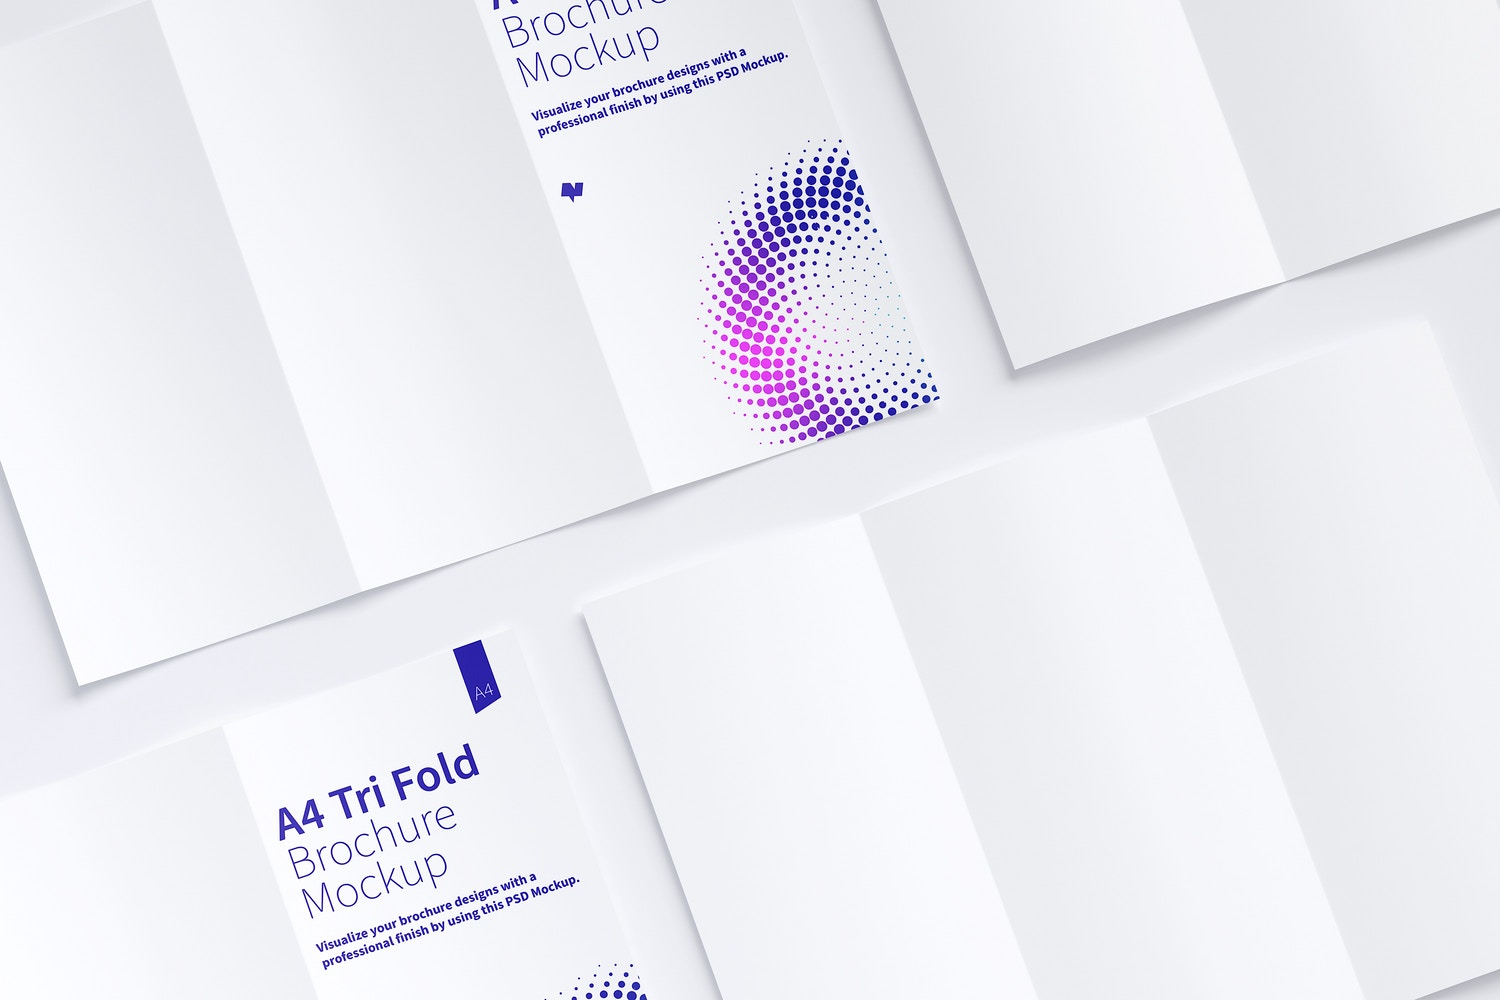 A4 Trifold Brochure Mockup 07 by Original Mockups on Original Mockups